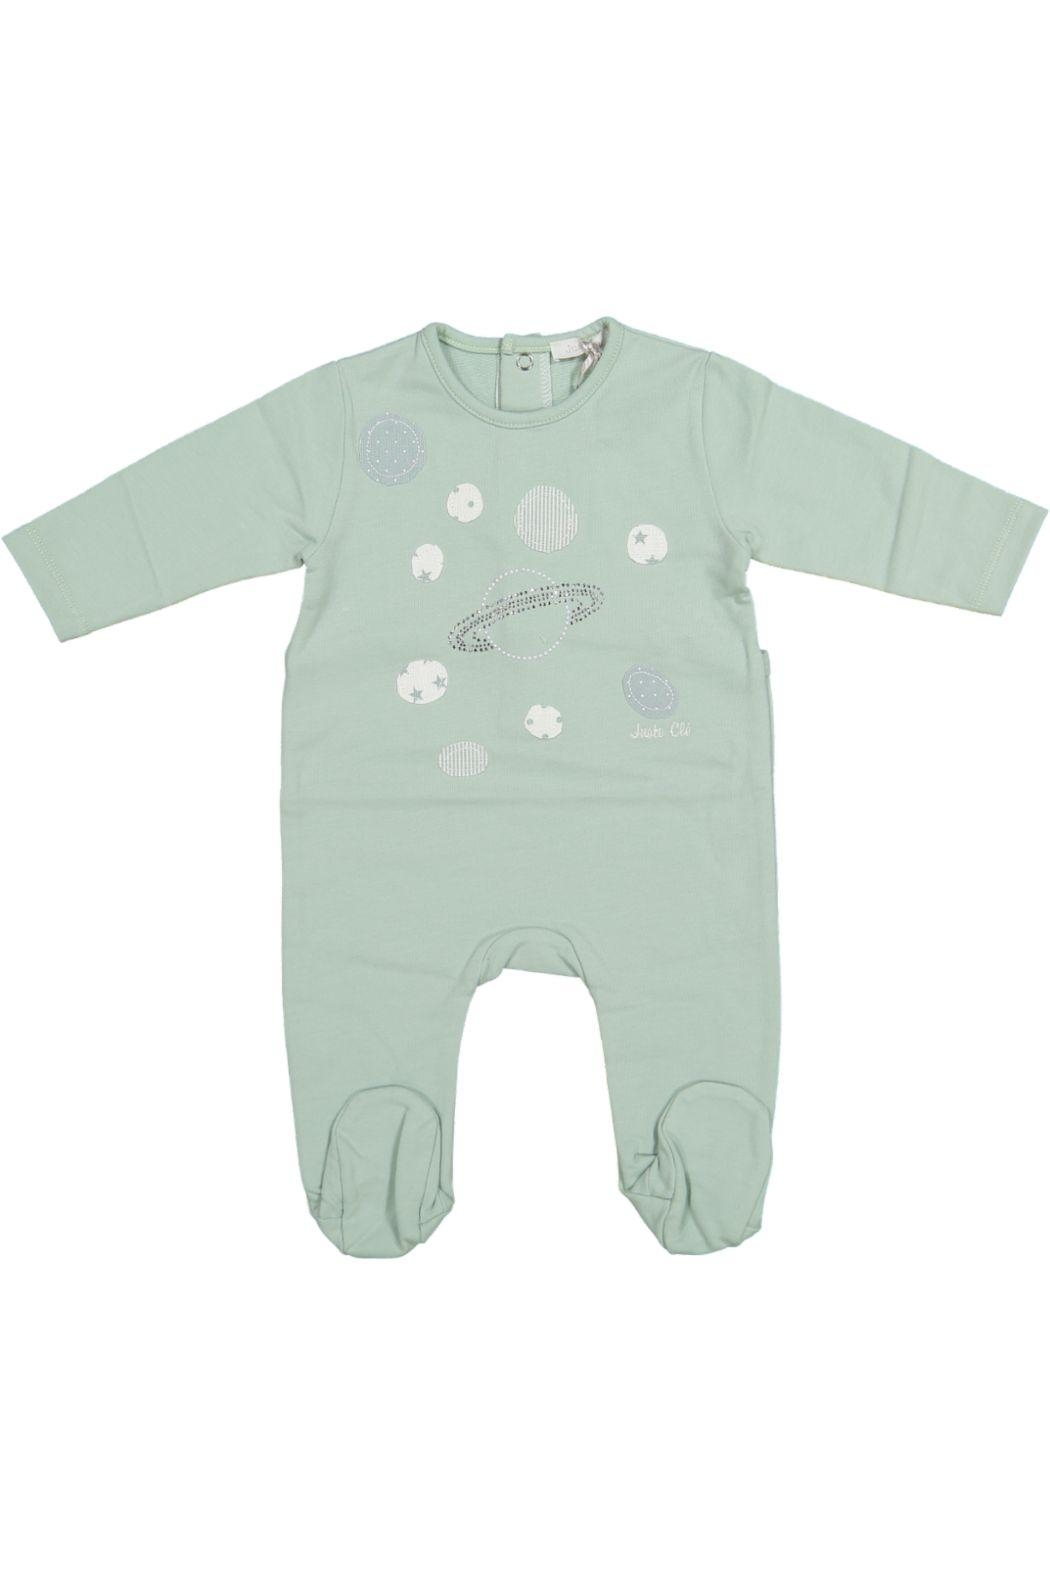 Juste Clé Mint Green Planet Dot Onesie - Front Cropped Image